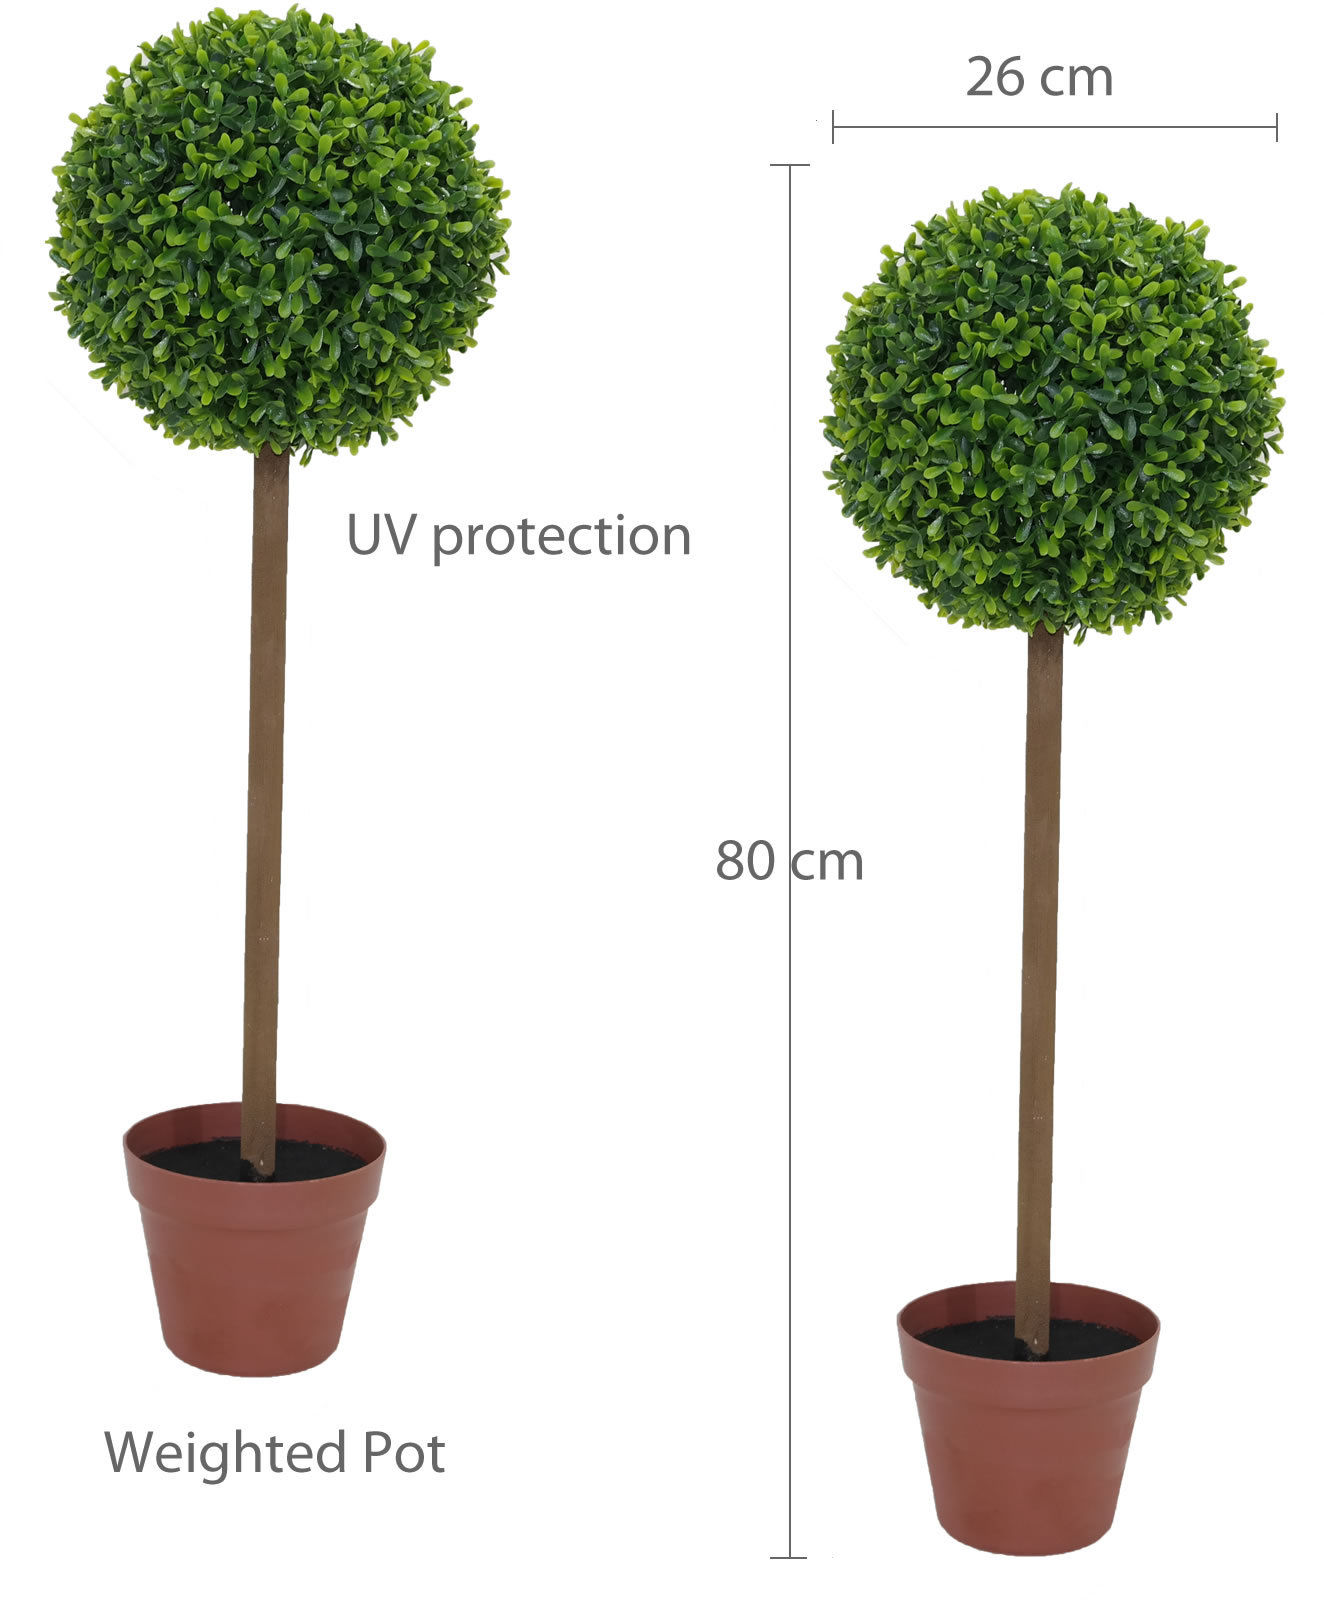 Box Wood Artificial Topiary Tree Indoor Outdoor Decoration Home Office Plant 5055493832879 Ebay